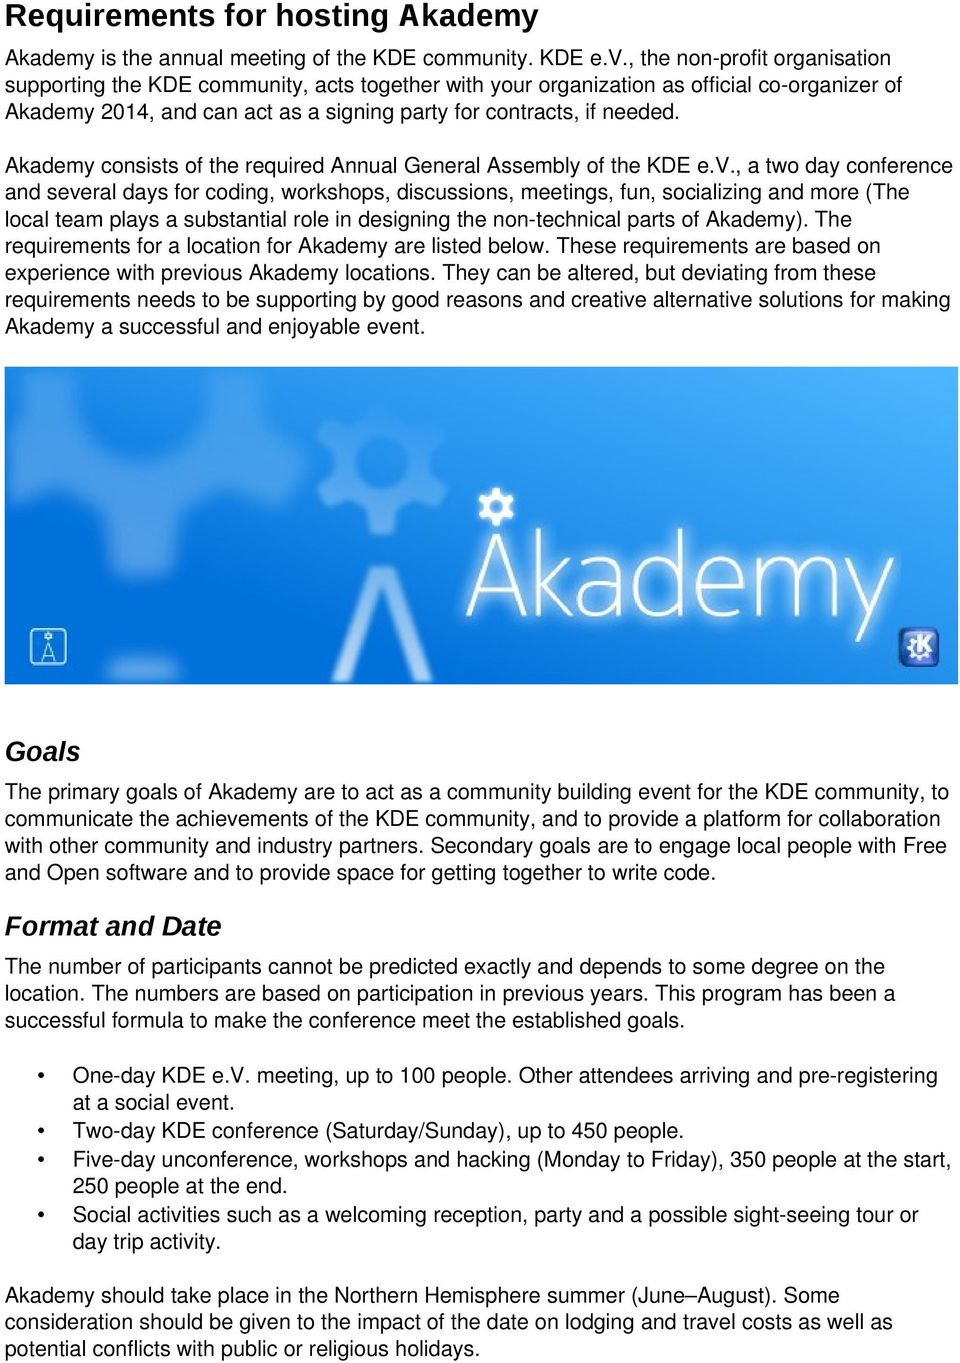 Akademy consists of the required Annual General Assembly of the KDE e.v.